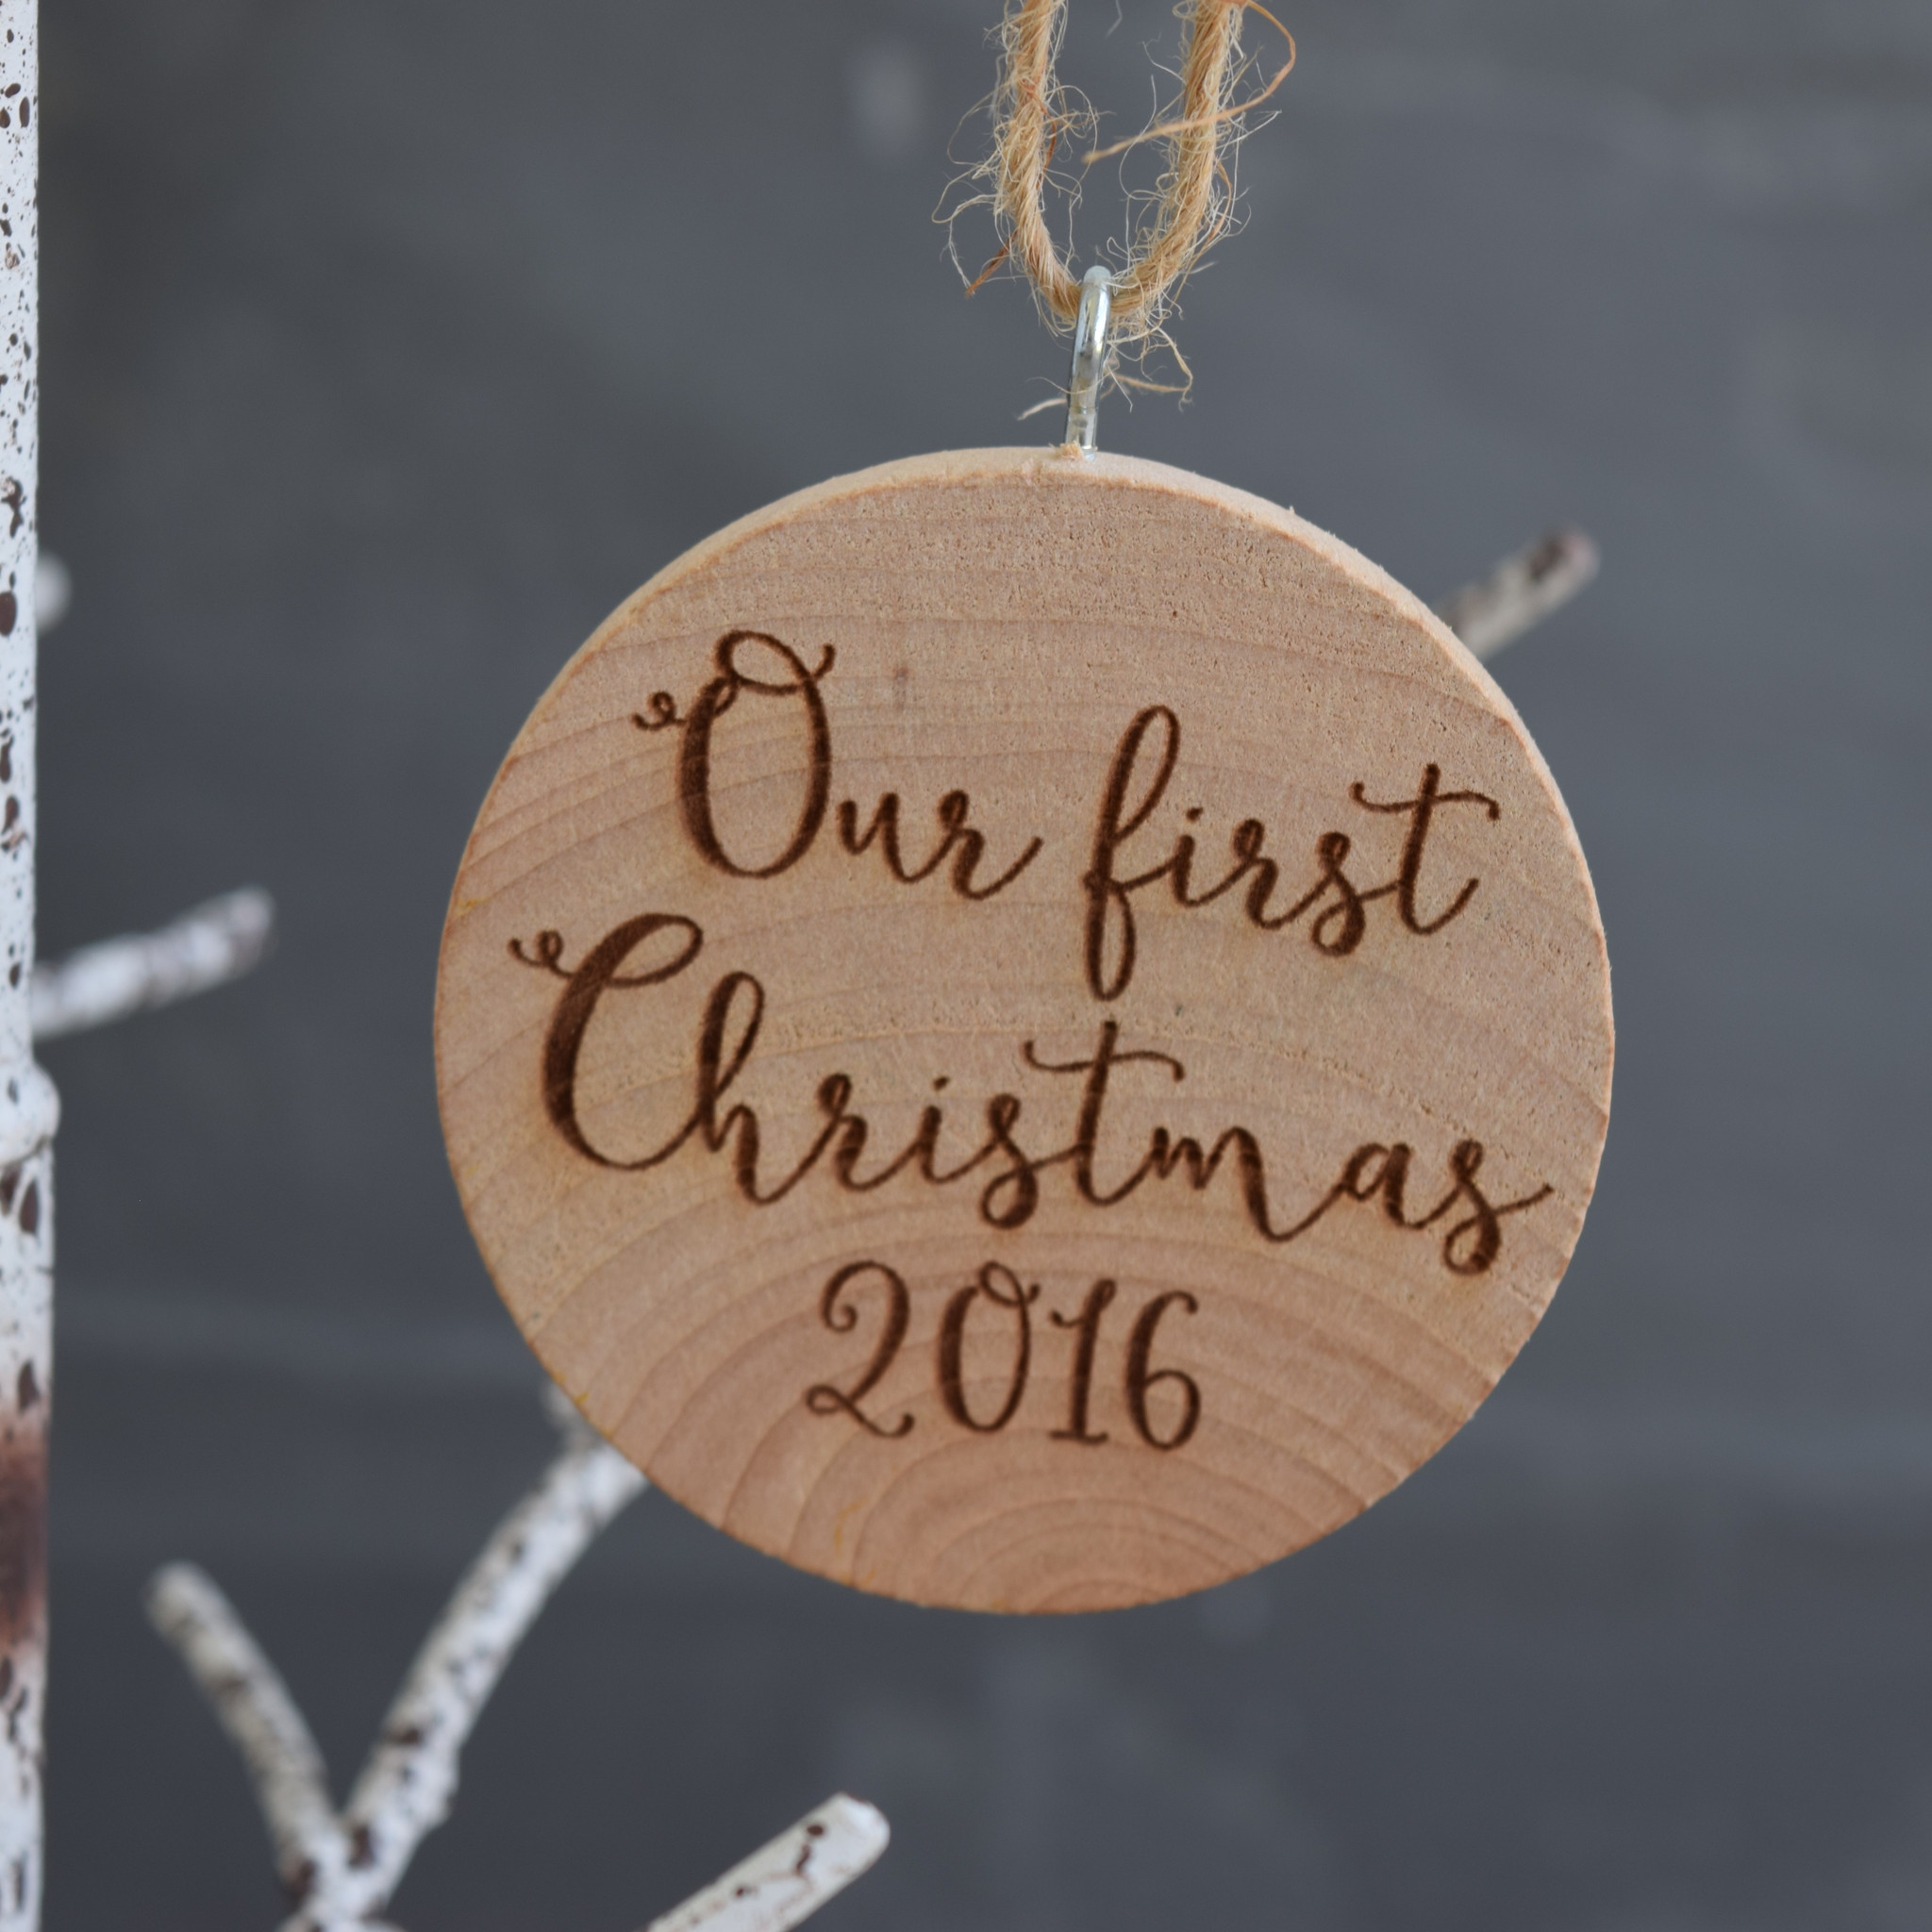 Fullsize Of Our First Christmas